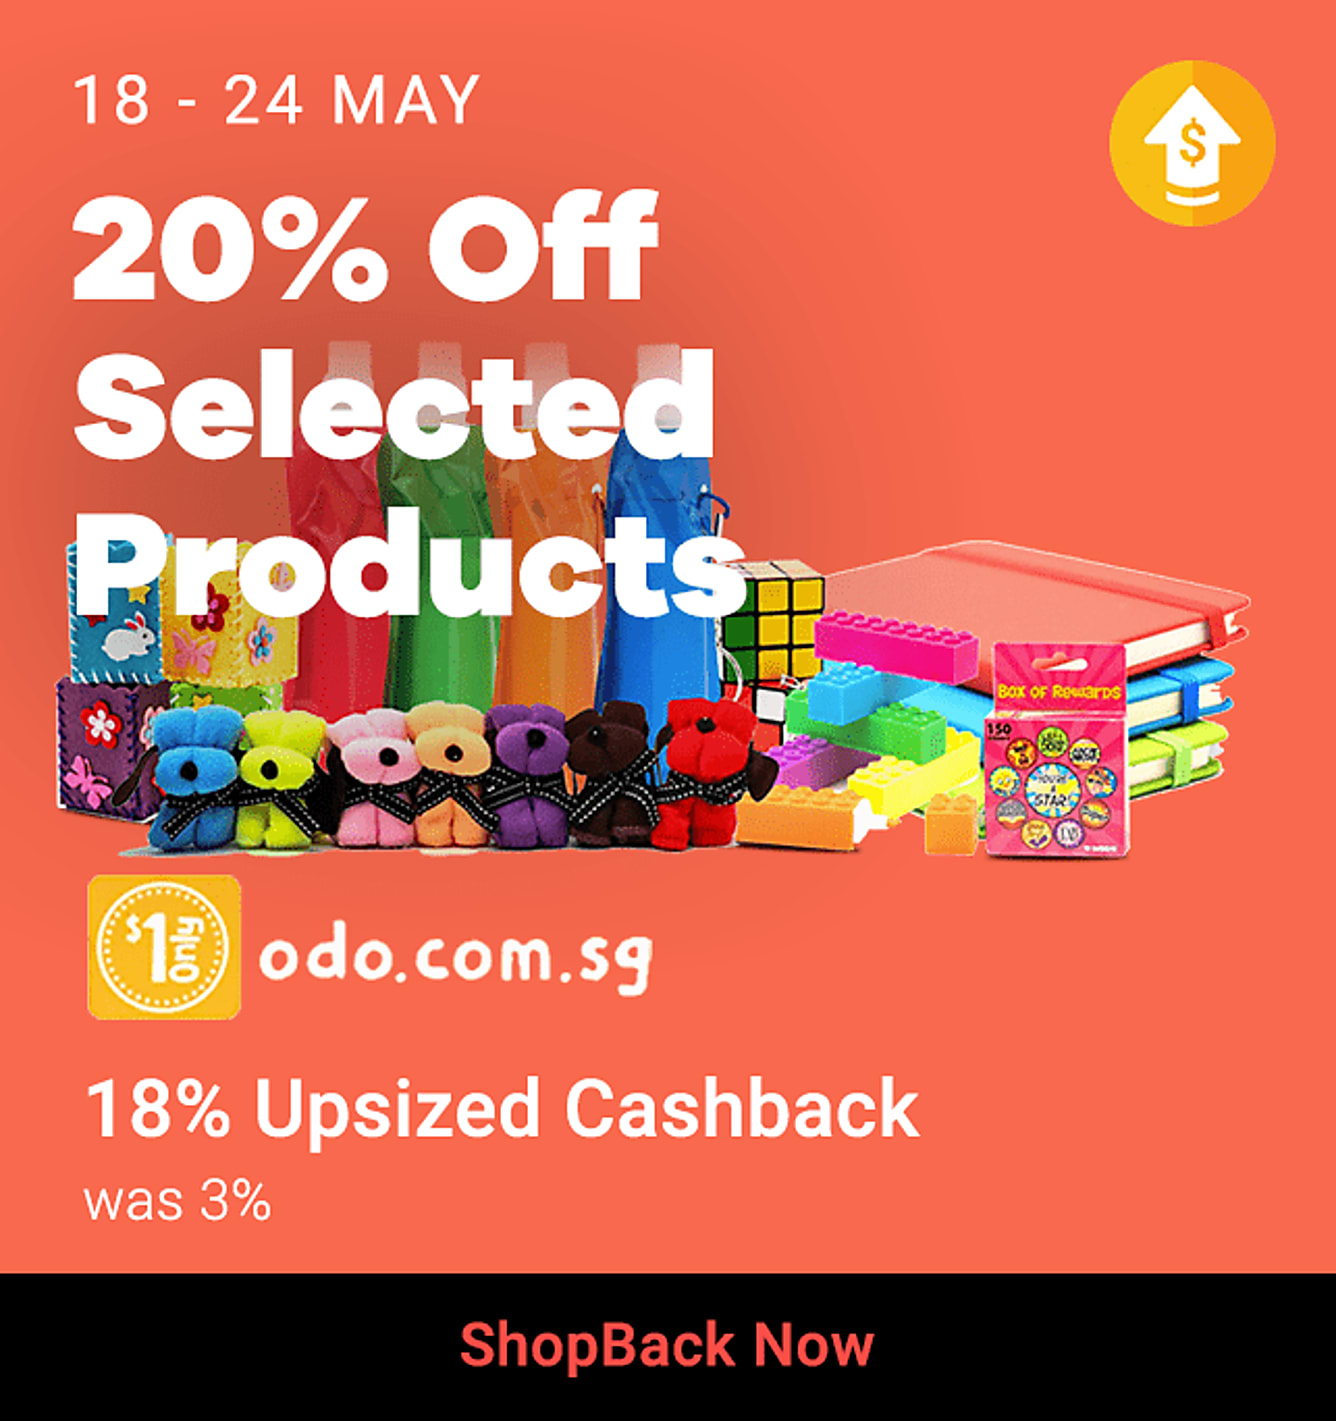 One Dollar Only_Upsize_18 May-24 May 2020